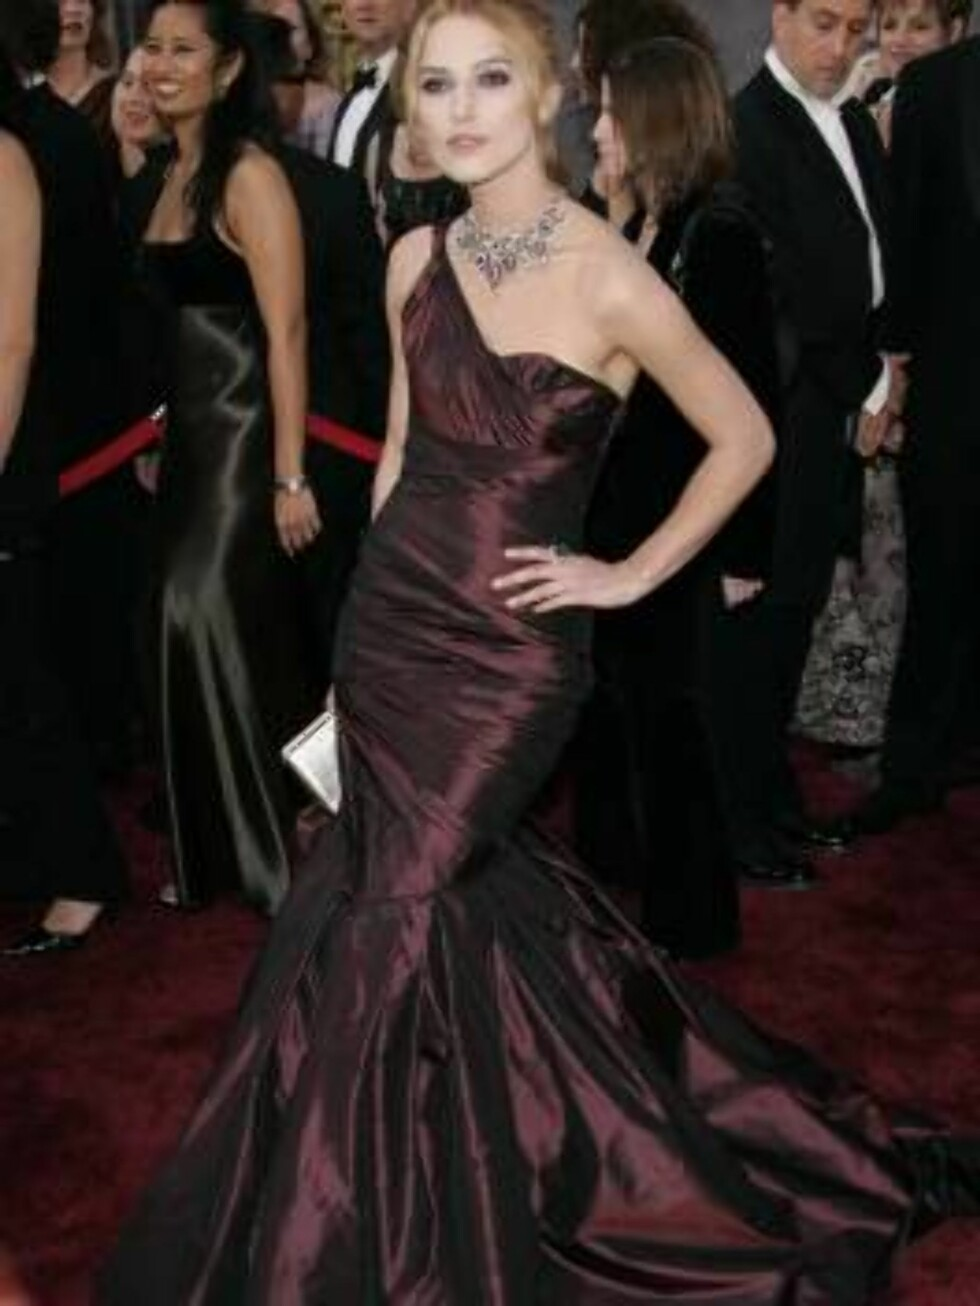 Mar 05, 2006; Hollywood, CA, USA; OSCARS 2006: KEIRA KNIGHTLEY arriving at the 78th Annual Academy Awards held at the Kodak Theatre in Hollywood  Photo by Lisa O'Connor/ZUMA Press.  Code: 4014 COPYRIGHT STELLA PICTURES Foto: Stella Pictures